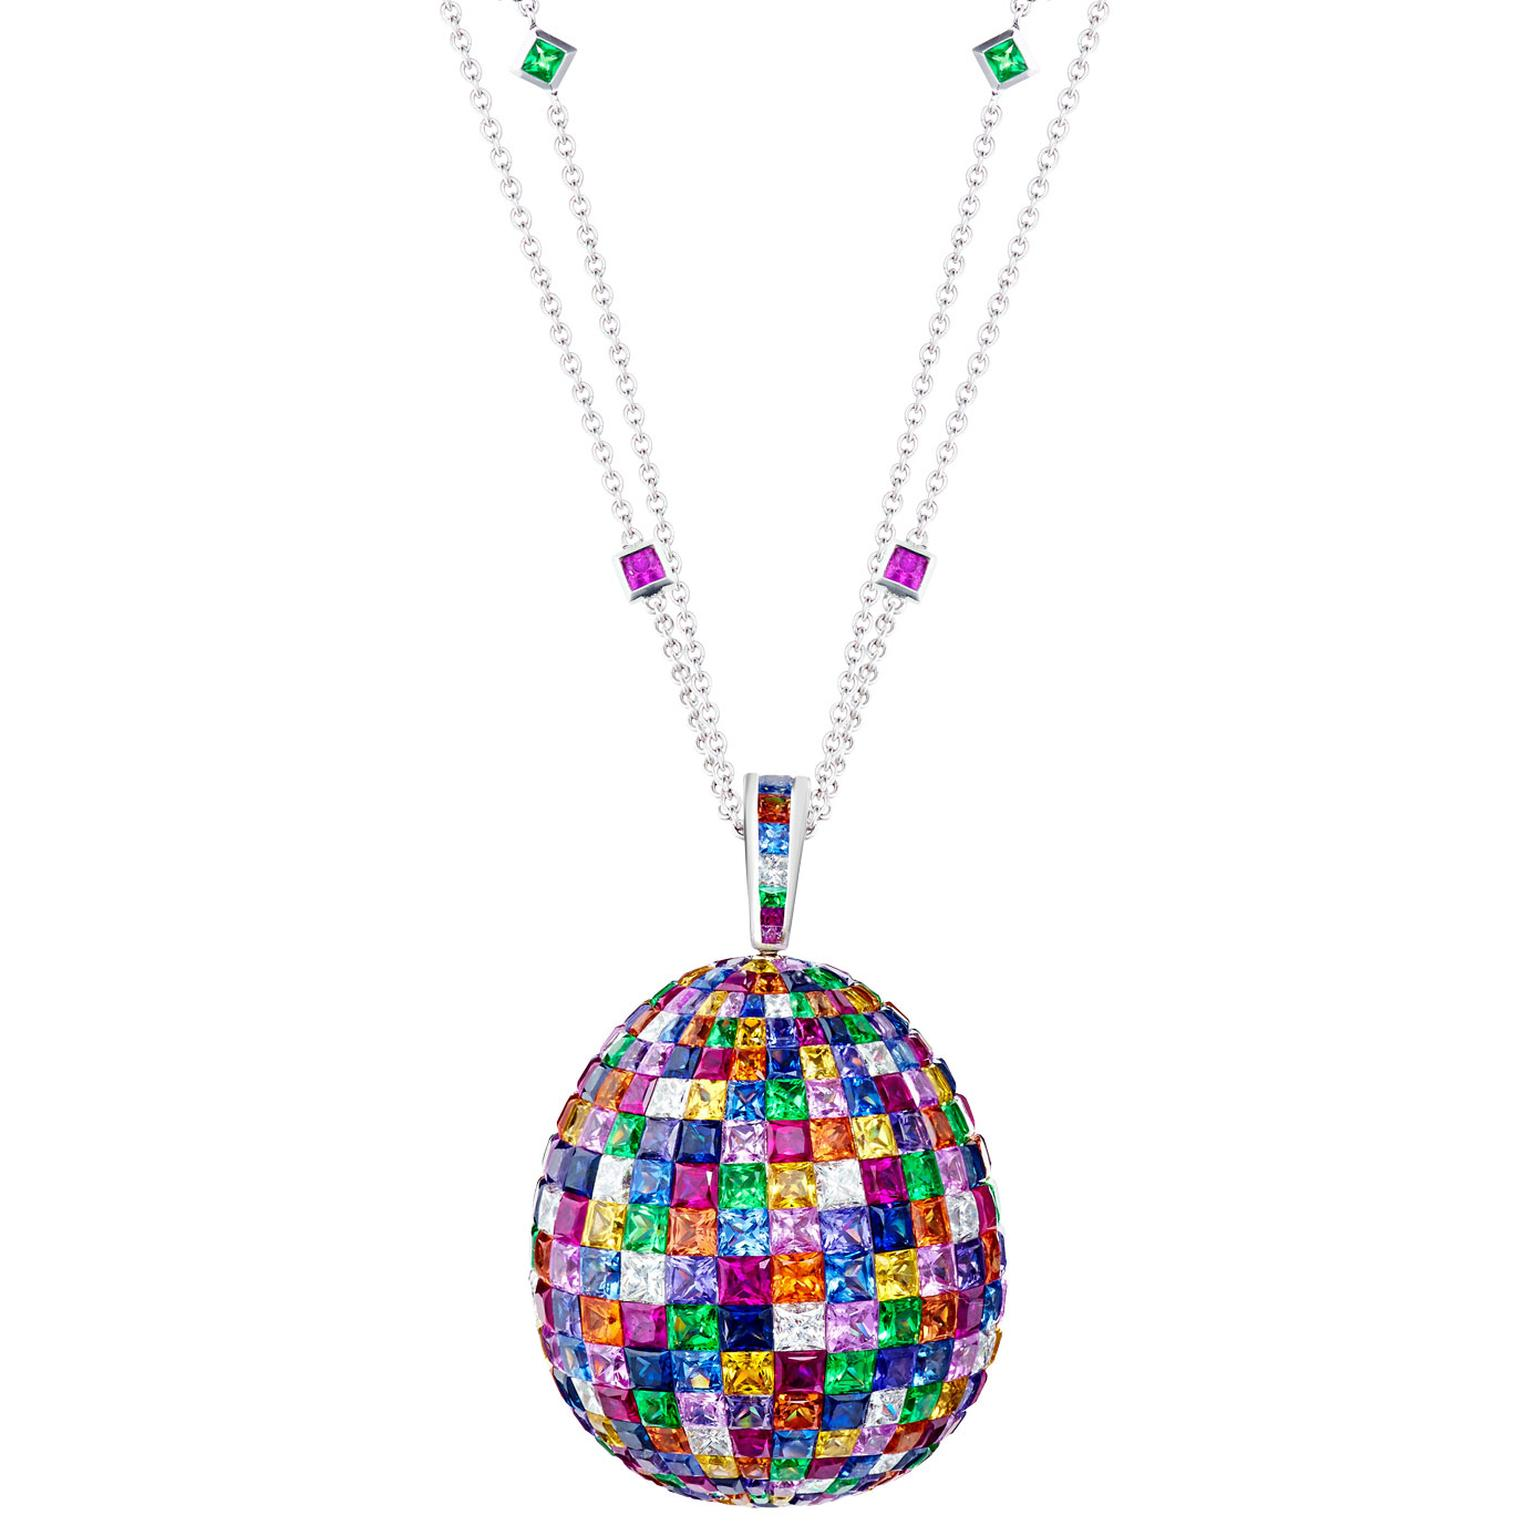 Fabergé mosaic multi-coloured pendant